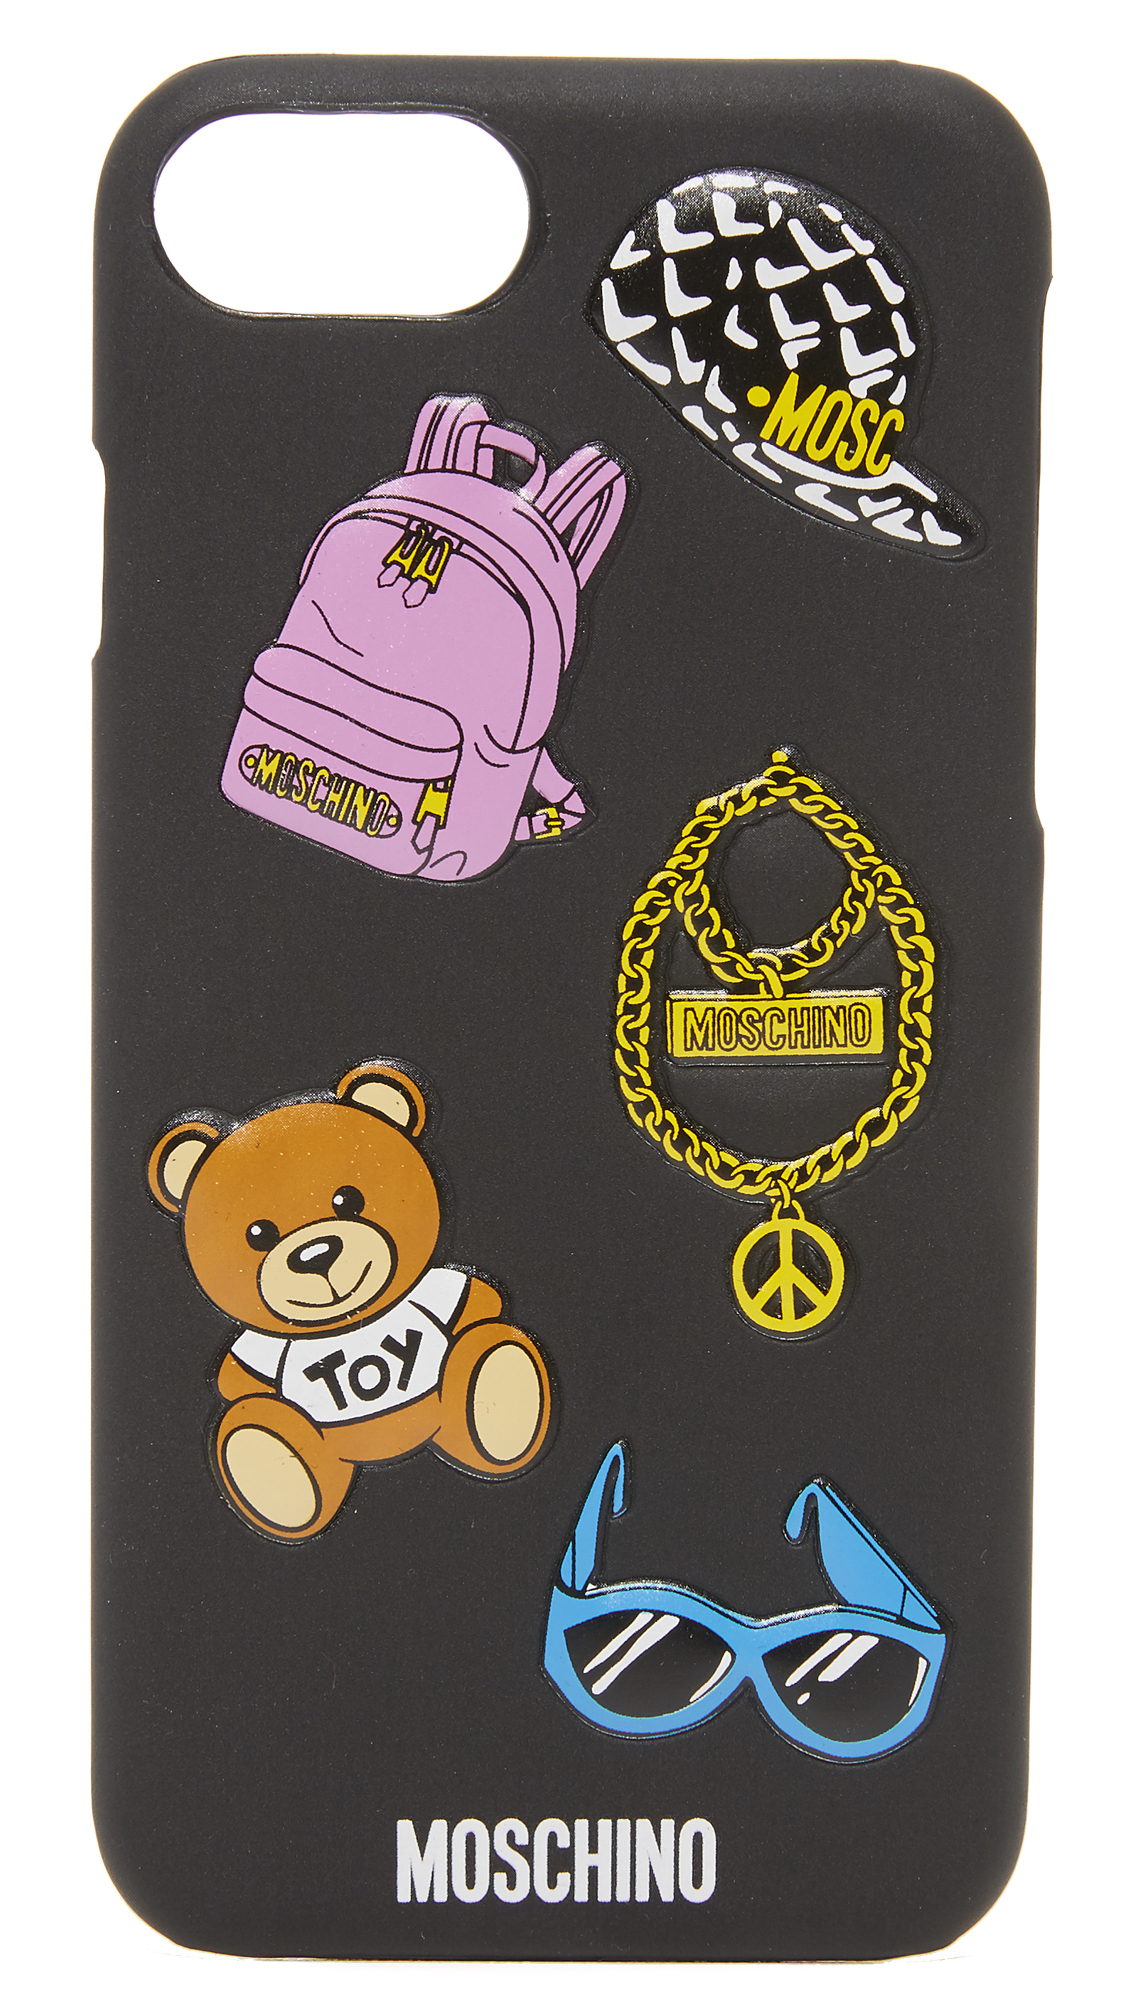 Moschino Iphone Case - Black at Shopbop